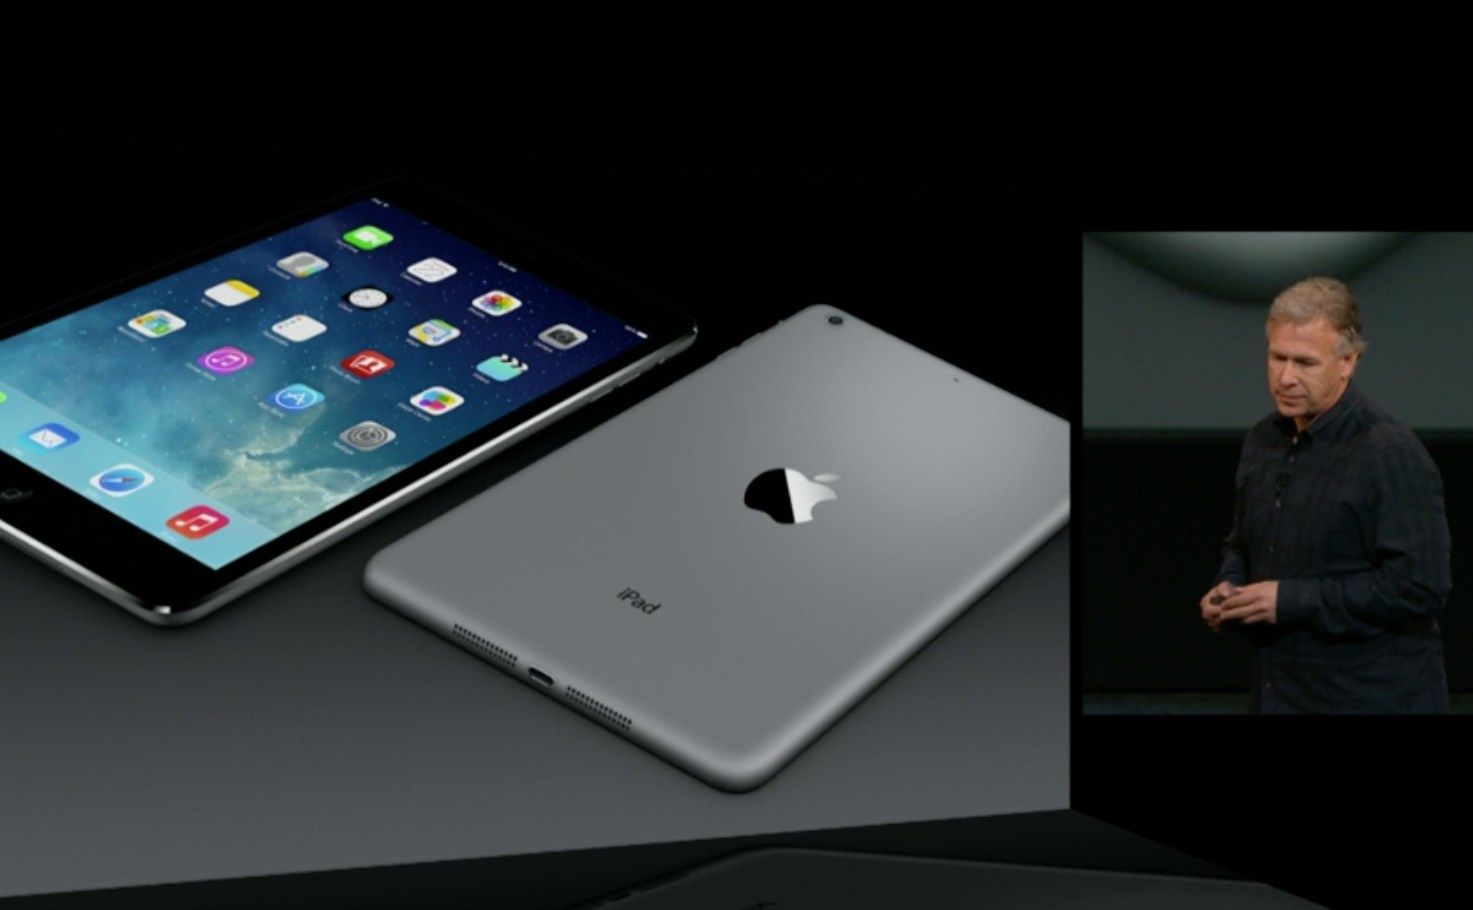 apple-ipad-event-2013-2013-10-22-at-2-18-03-pm